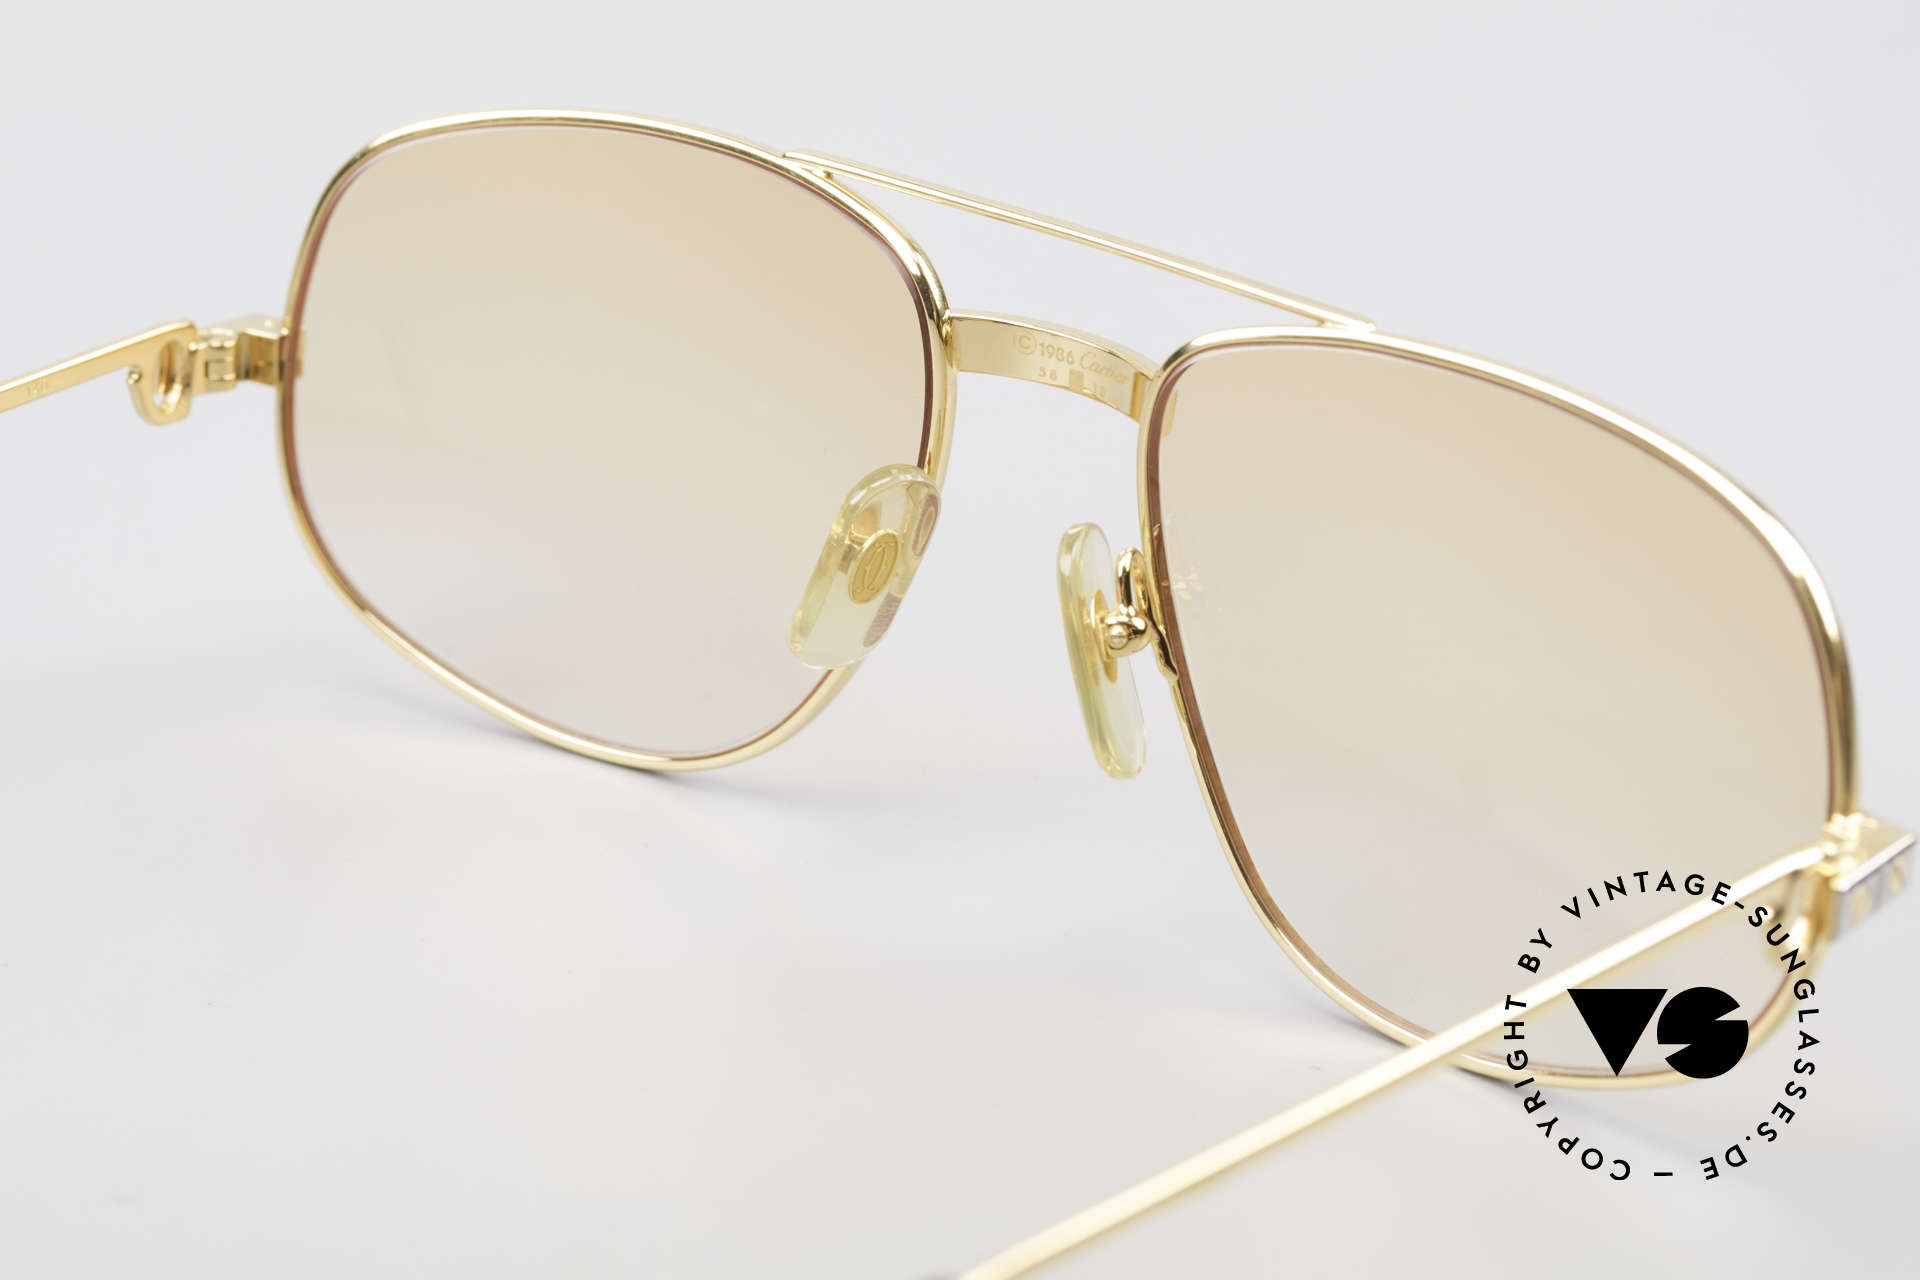 Cartier Romance Santos - L Luxury Vintage Sunglasses, new ORANGE-gradient sun lenses (also wearable at night), Made for Men